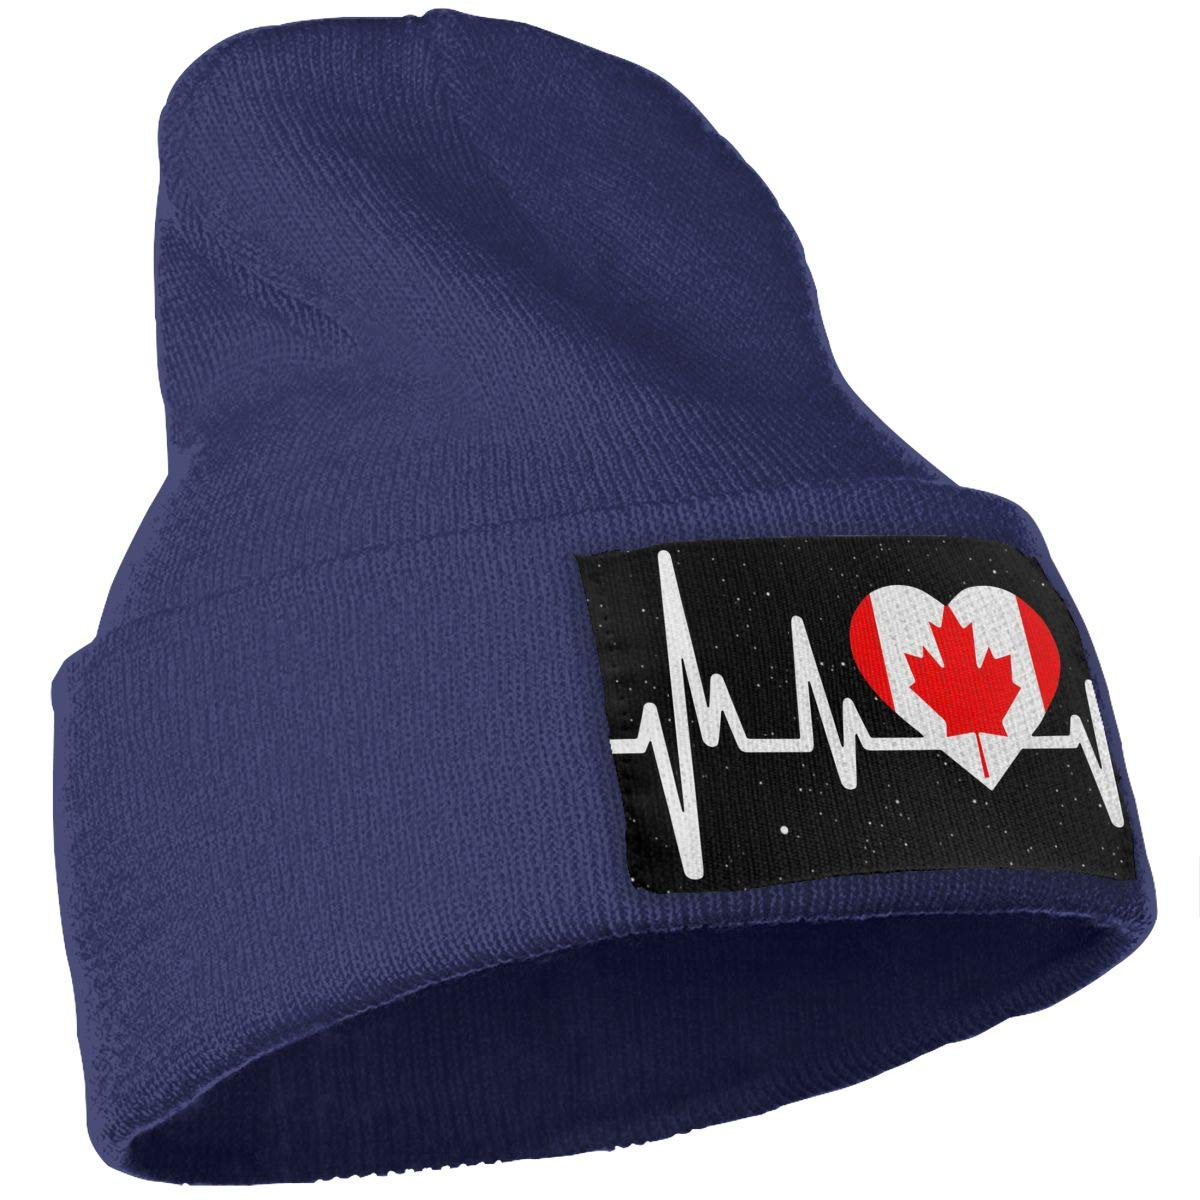 Stretchy /& Soft Winter Ski Skull Cap Canada Heartbeat Flag Men /& Women Solid Color Knit Beanie Hat